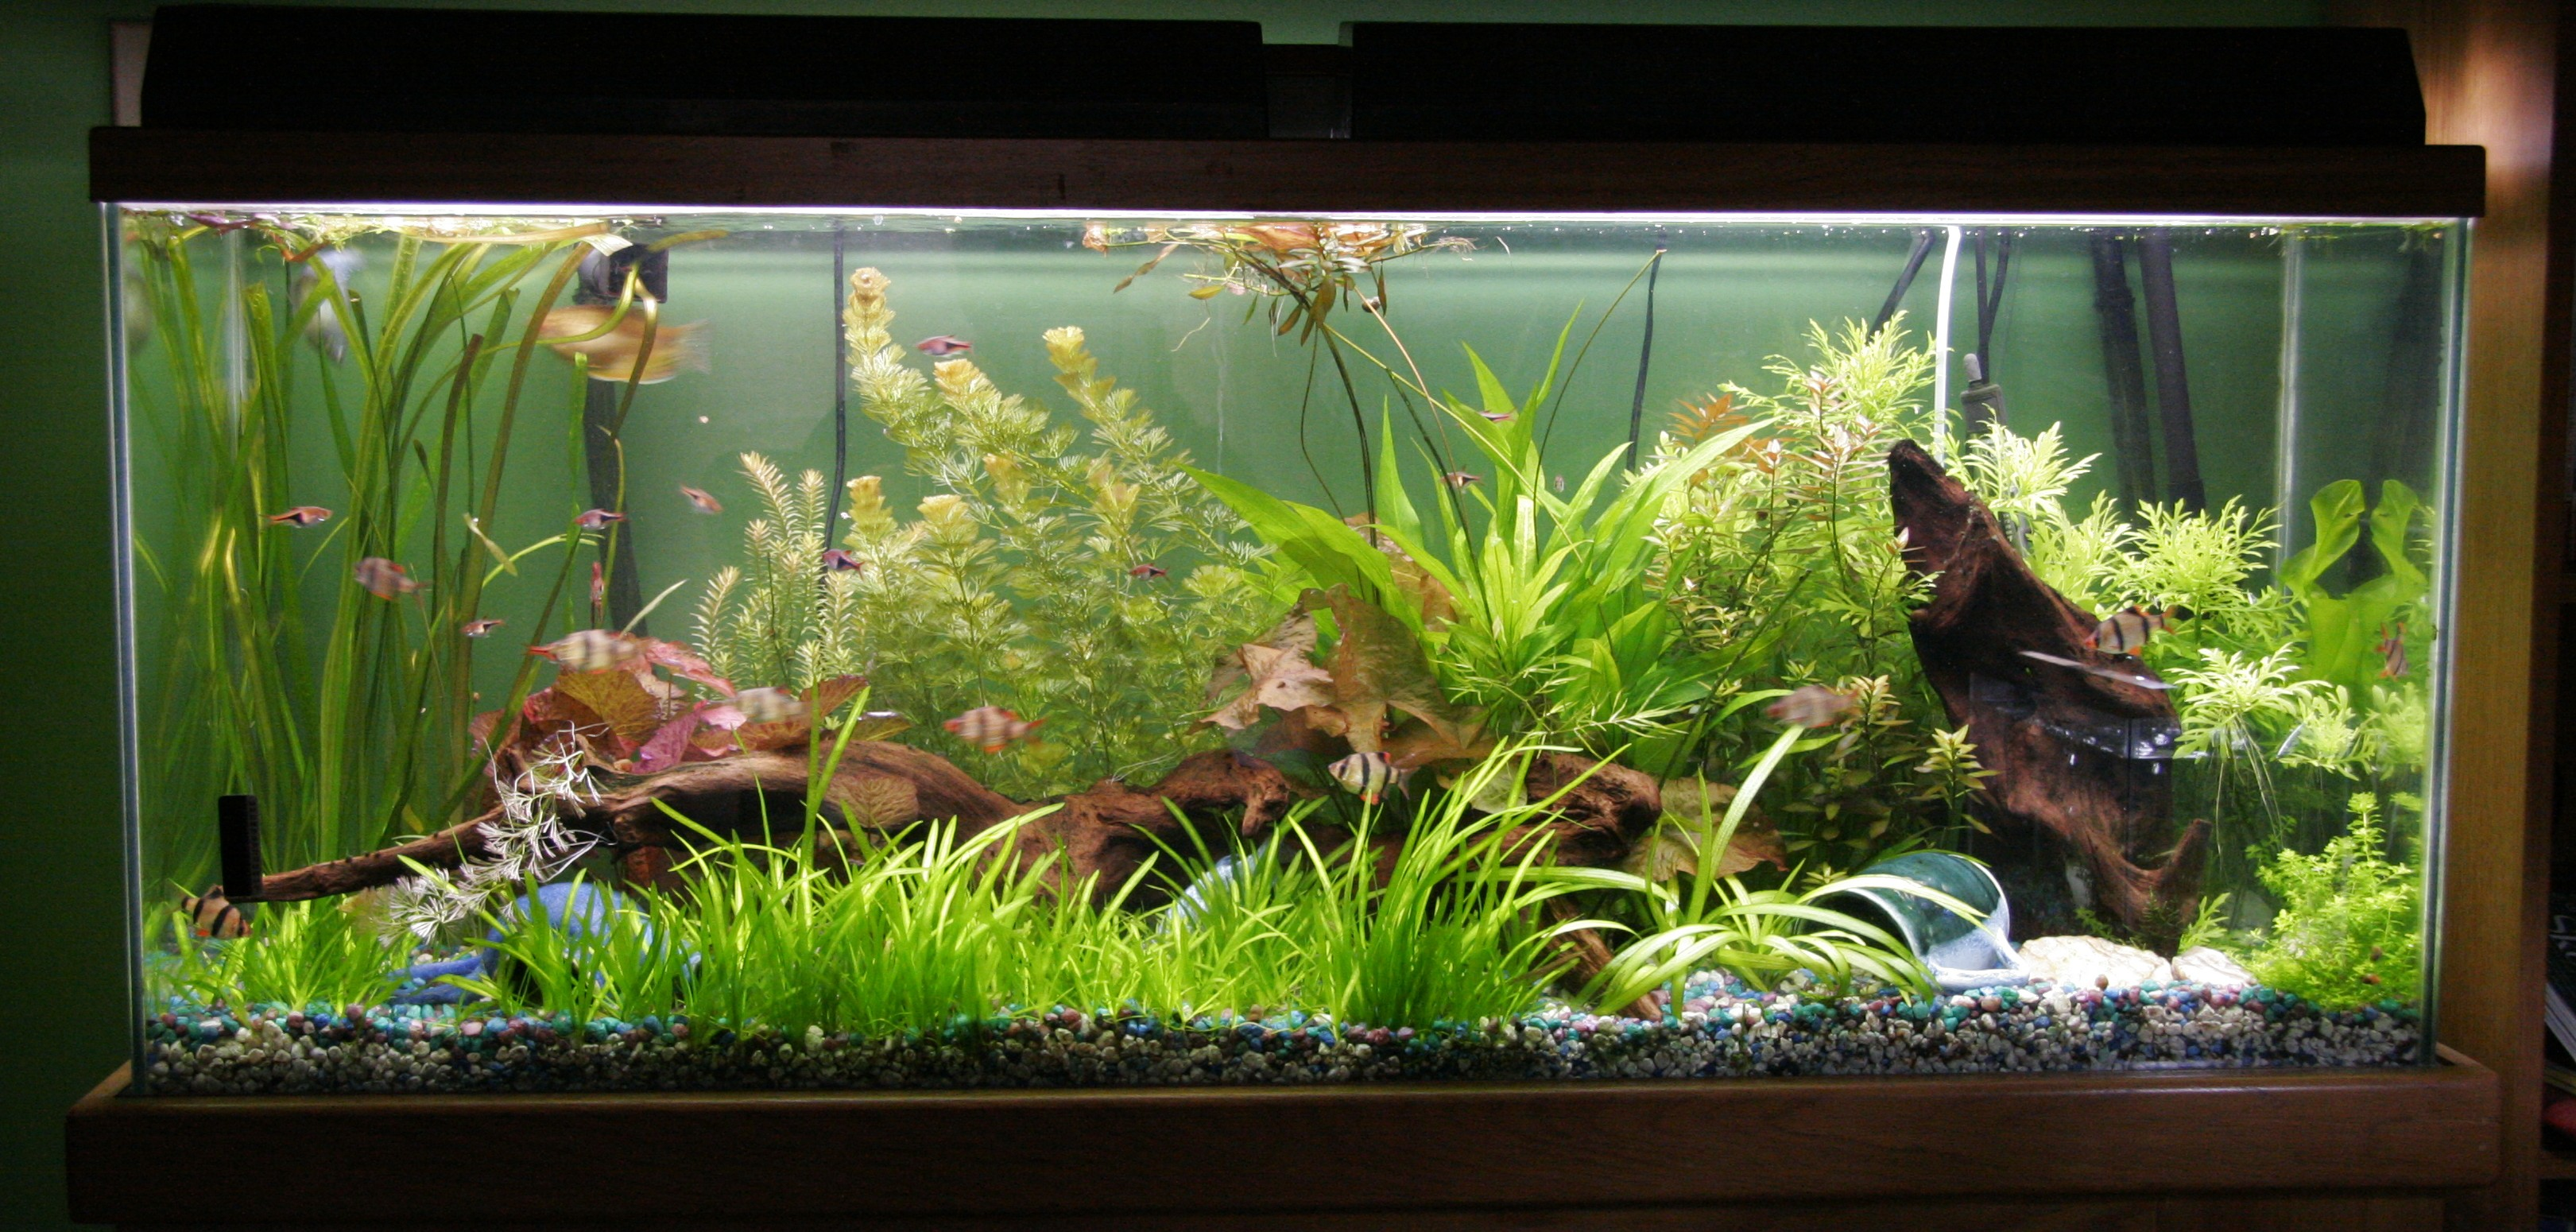 ... Freshwater Aquariums on Pinterest Aquascaping, Freshwater fish tank